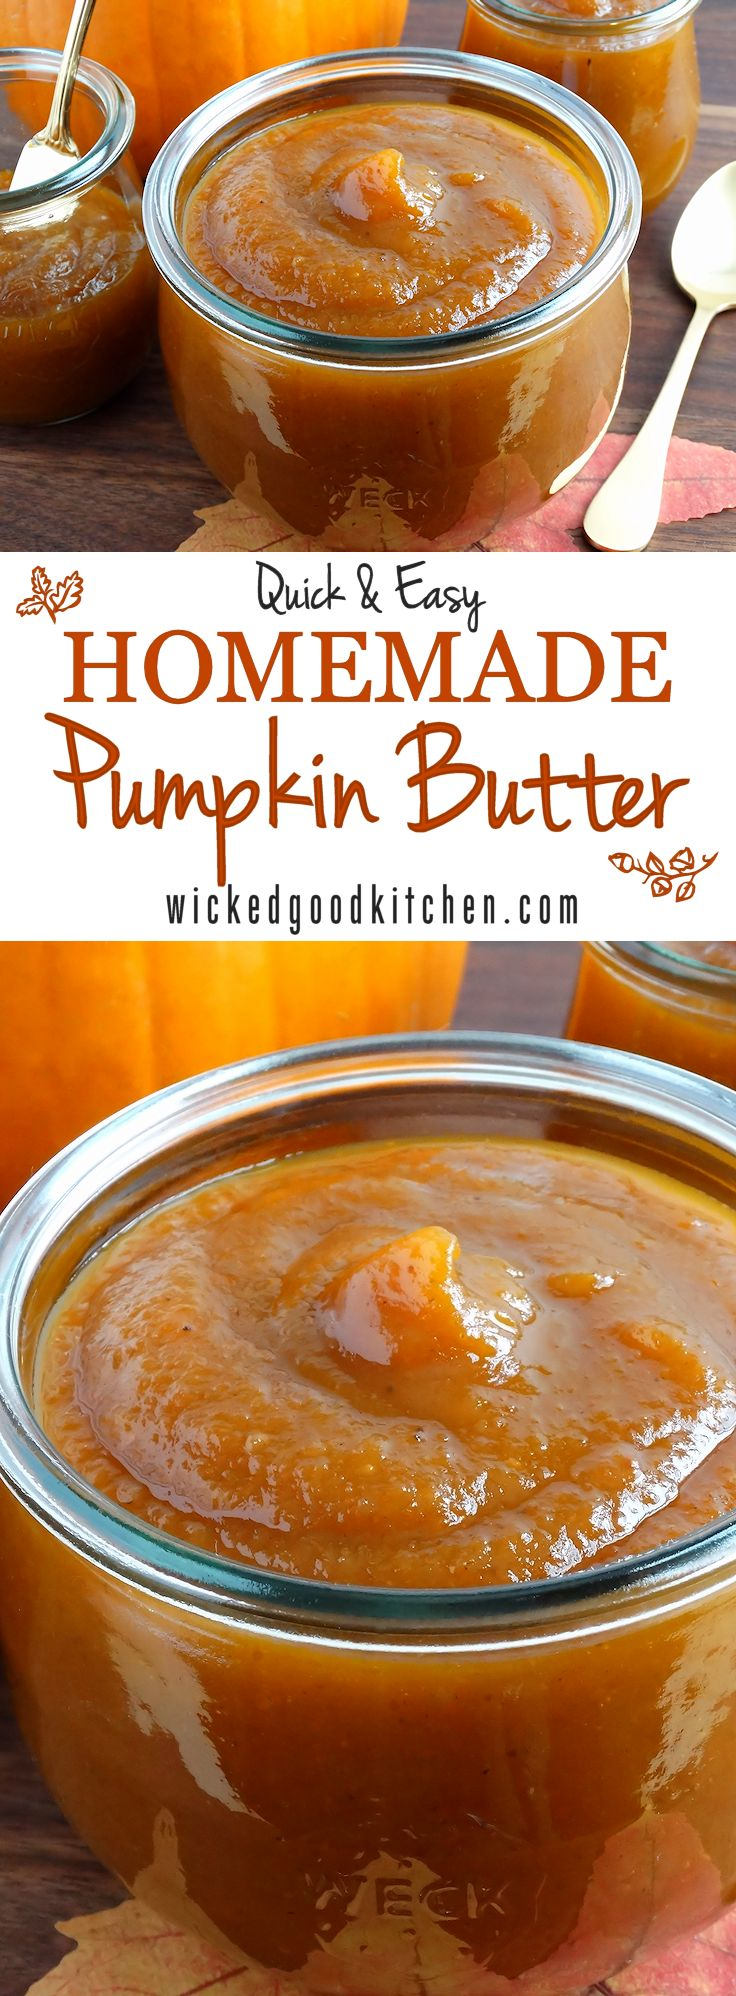 Make your own pumpkin butter - Bright flavor notes from apple juice or cider and a touch of fresh lemon and sweetened and spiced just right. (Fall, pumpkin, holiday desserts, recipes) | Repinned by Itzy Ritzy